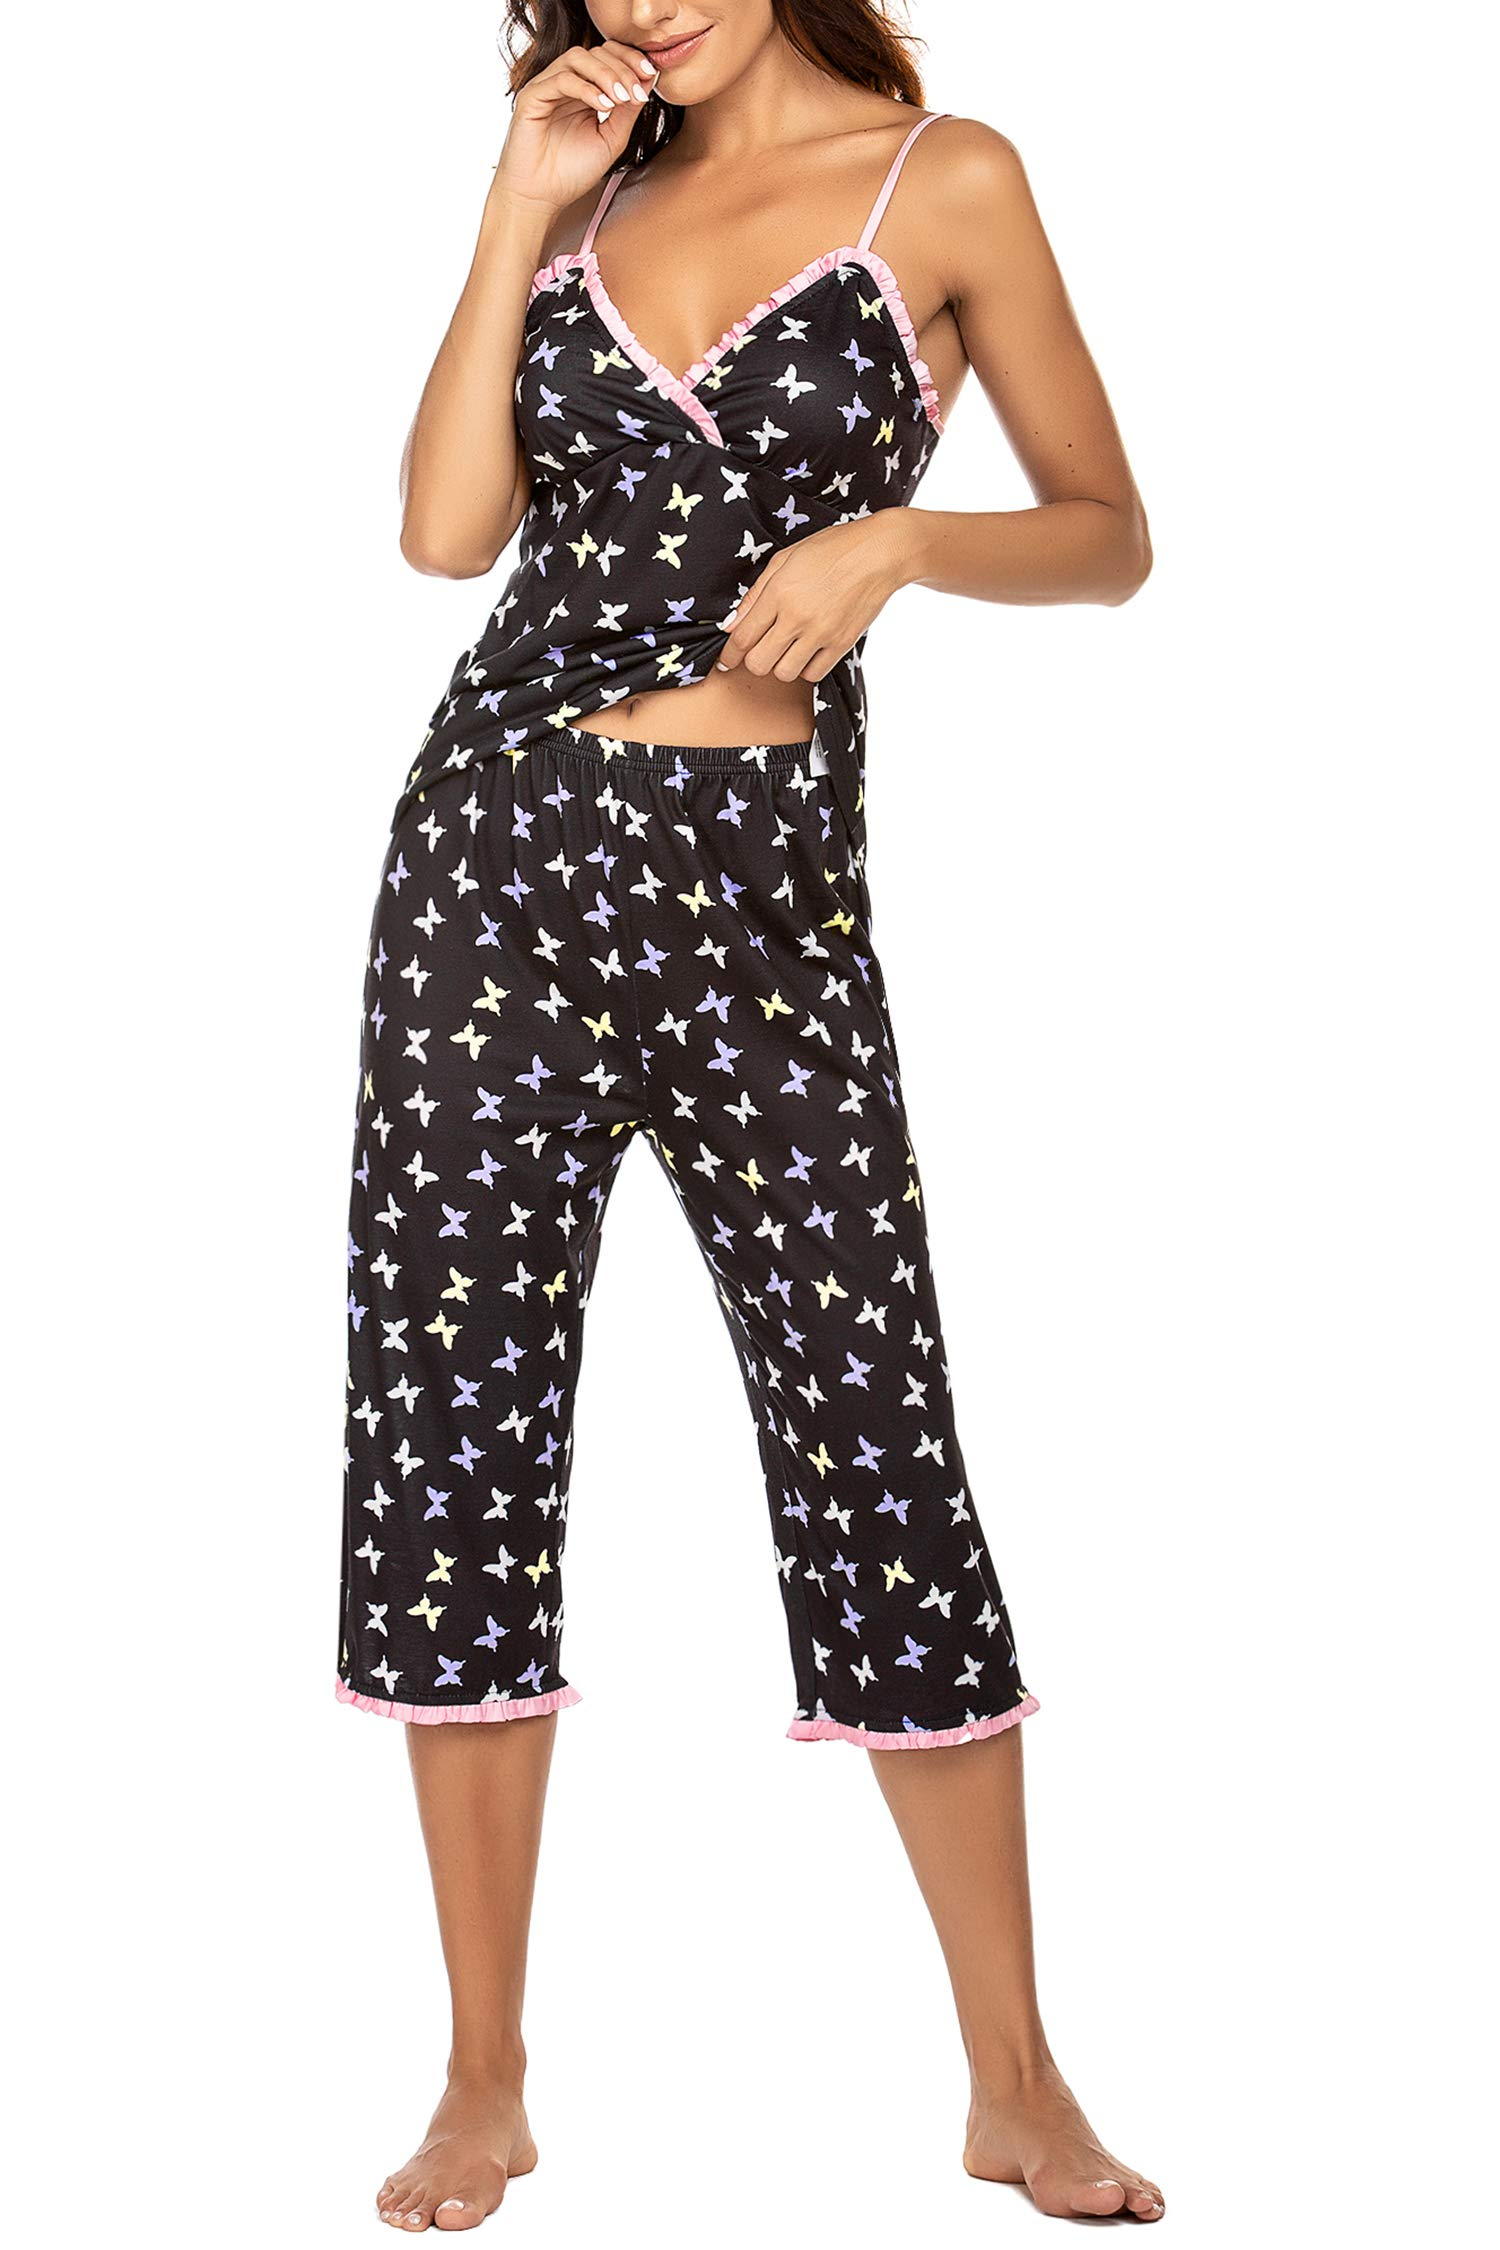 Hotouch Womens Pajamas Set V-Neck Printed Cami Top and Capris Pants Sleepwear Pjs Set S-XXL